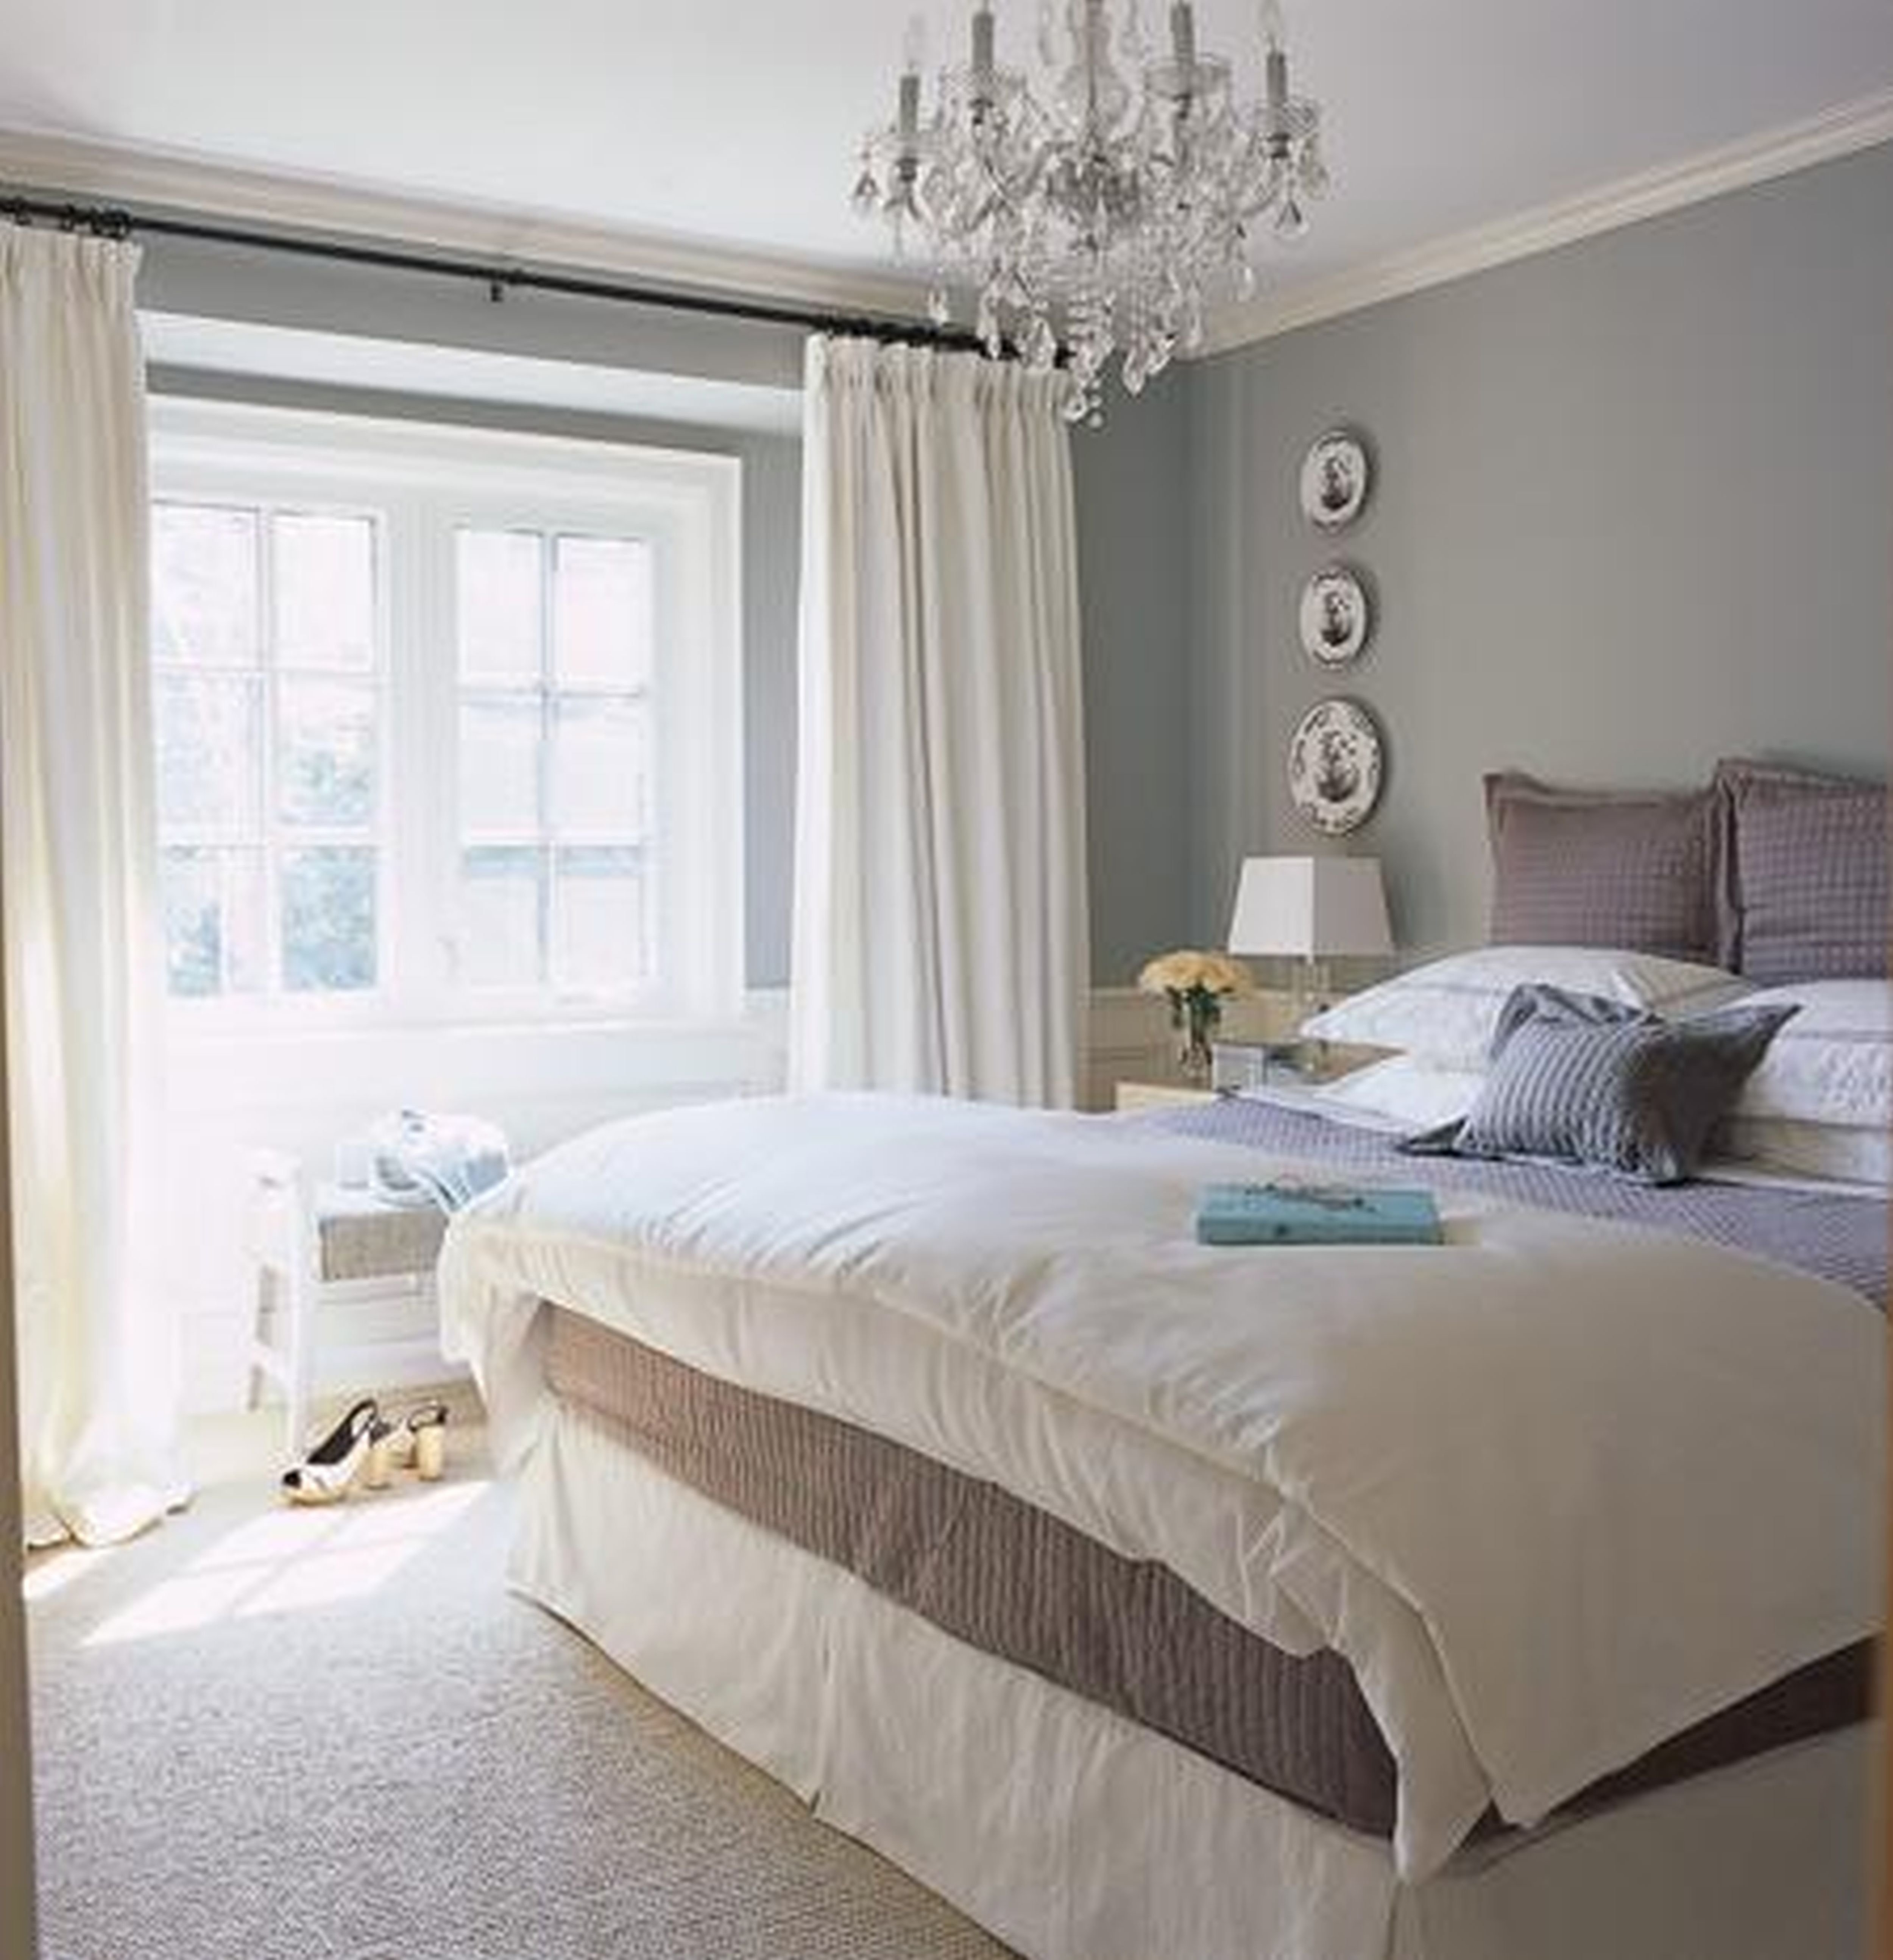 Best Design Ideas For A Small Bedroom – Lydia S Interiors With Pictures